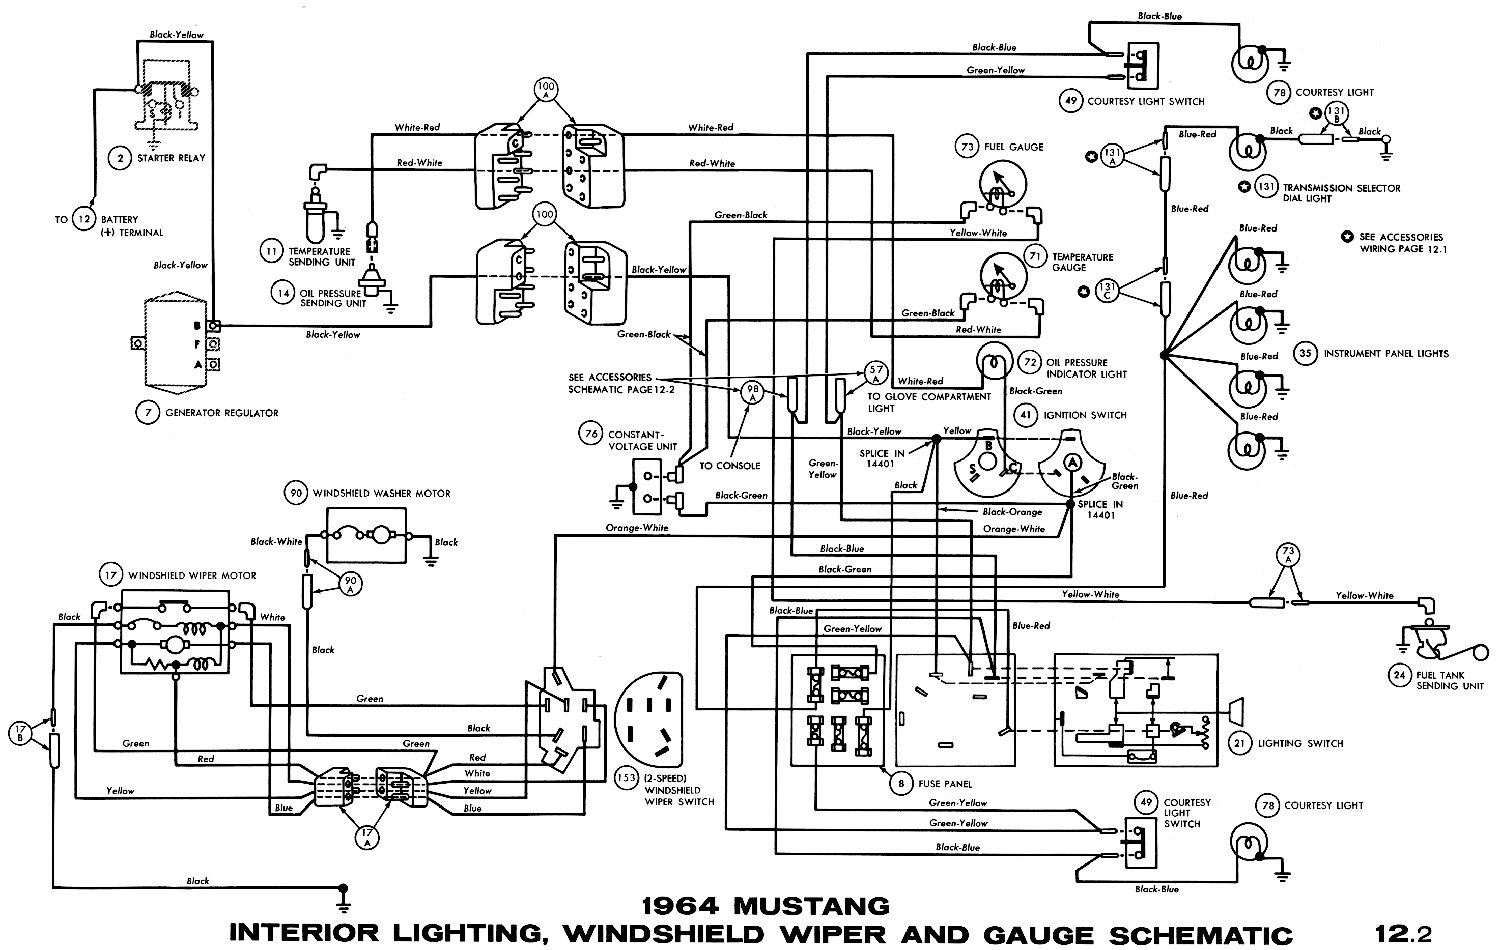 92 mustang 5.0 wiring diagram